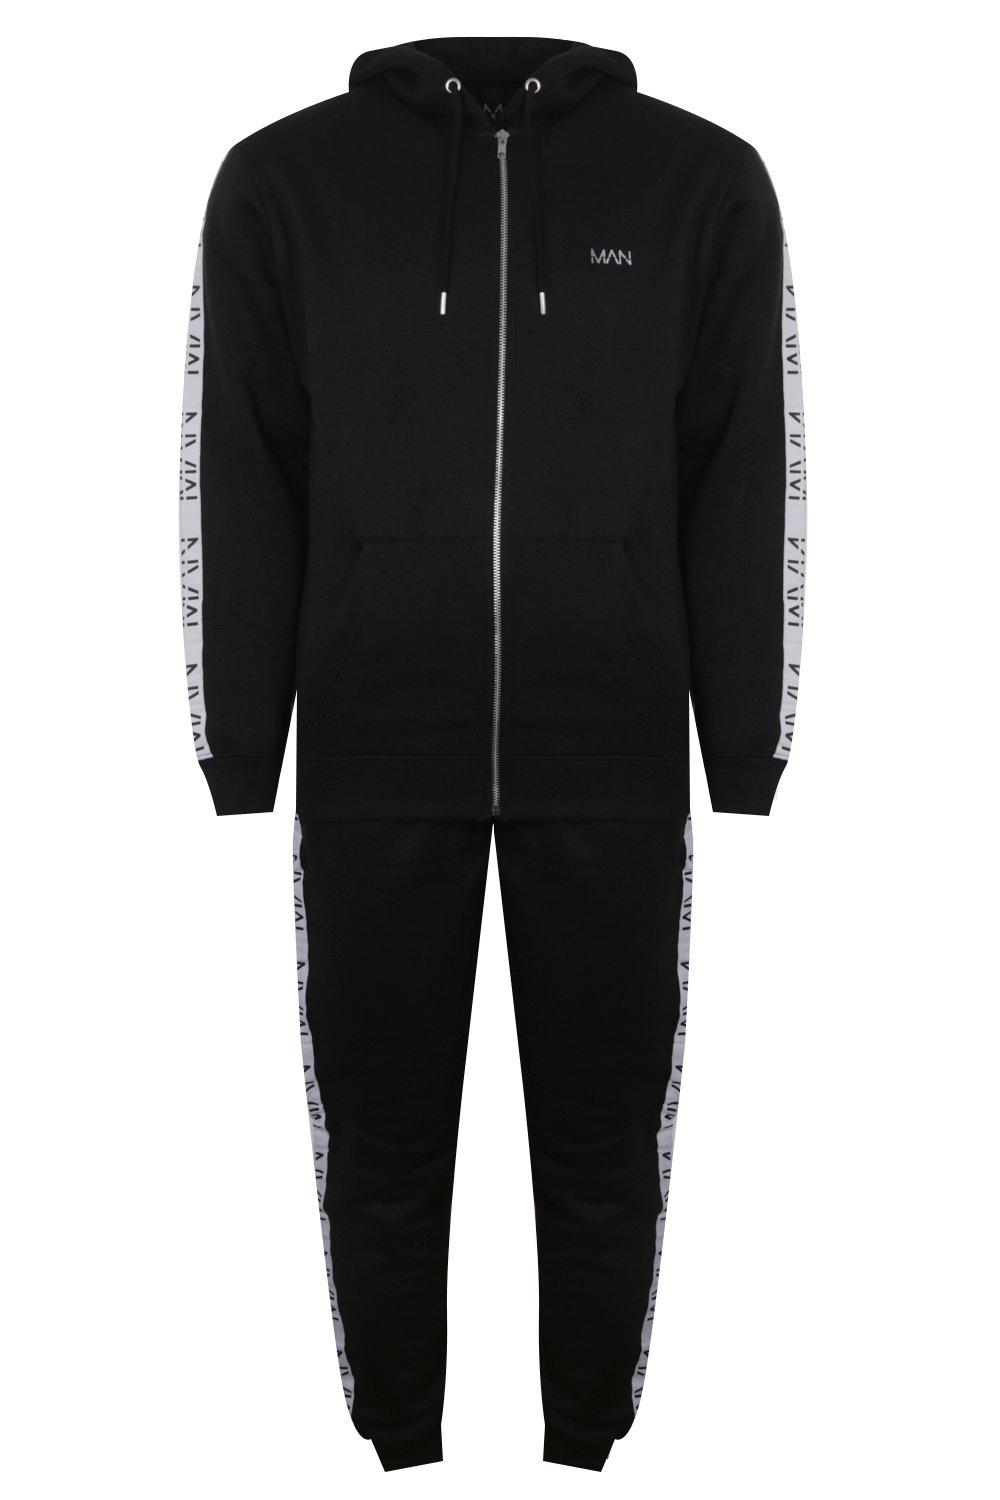 boohooMAN black Original MAN Embroidered Tracksuit With Tape